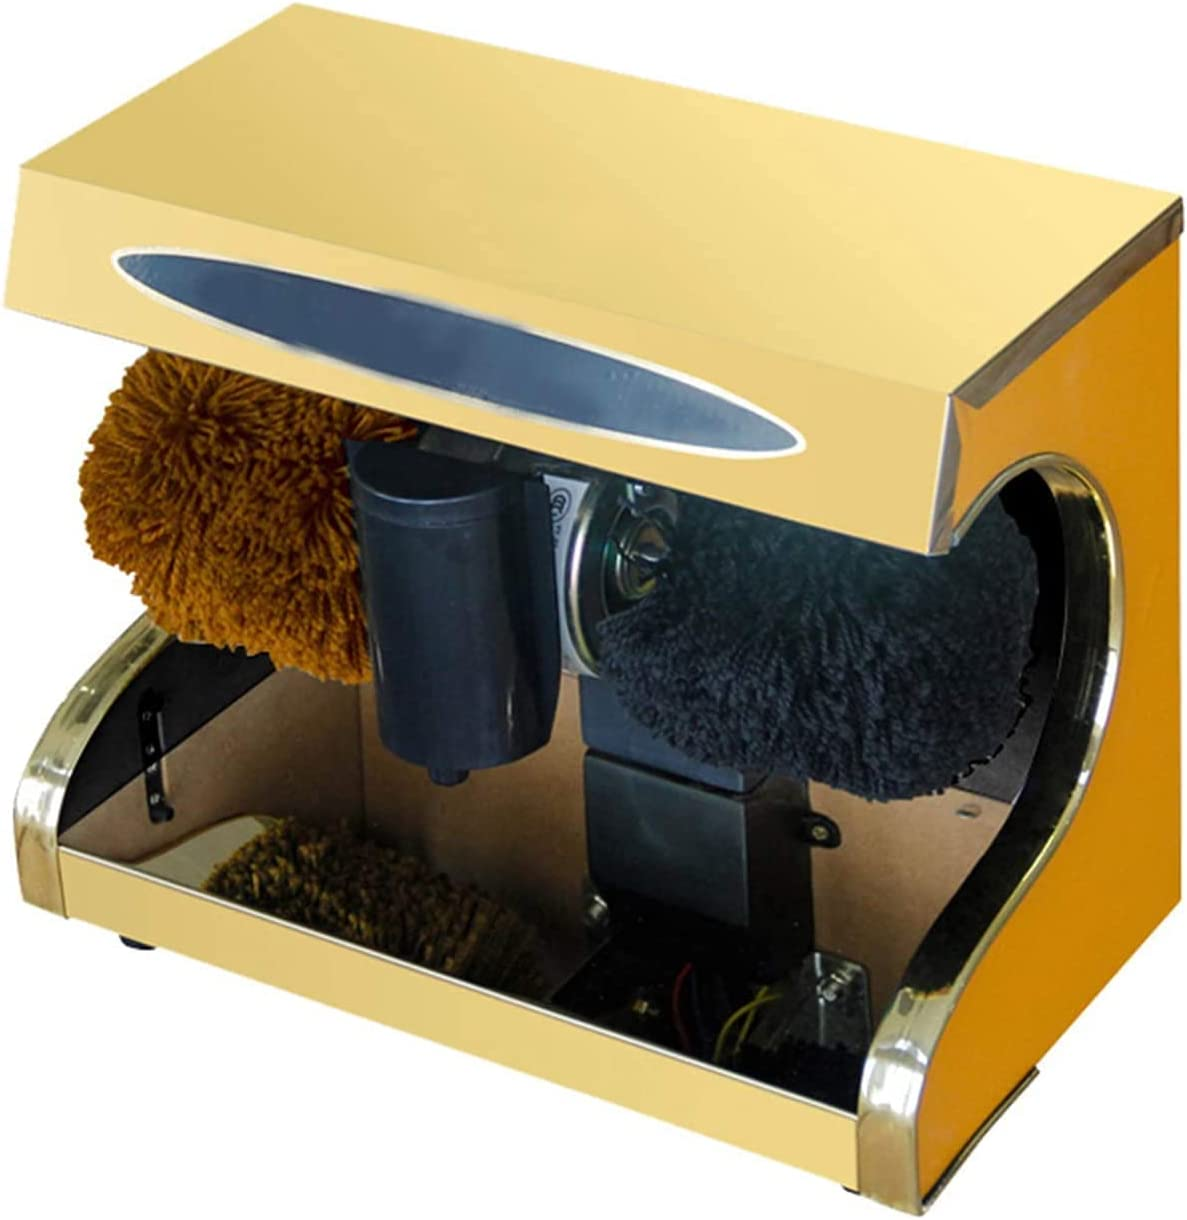 HTZ The Automatic Max 78% OFF Induction Shoe S Polisher Stainless Industry No. 1 integrates